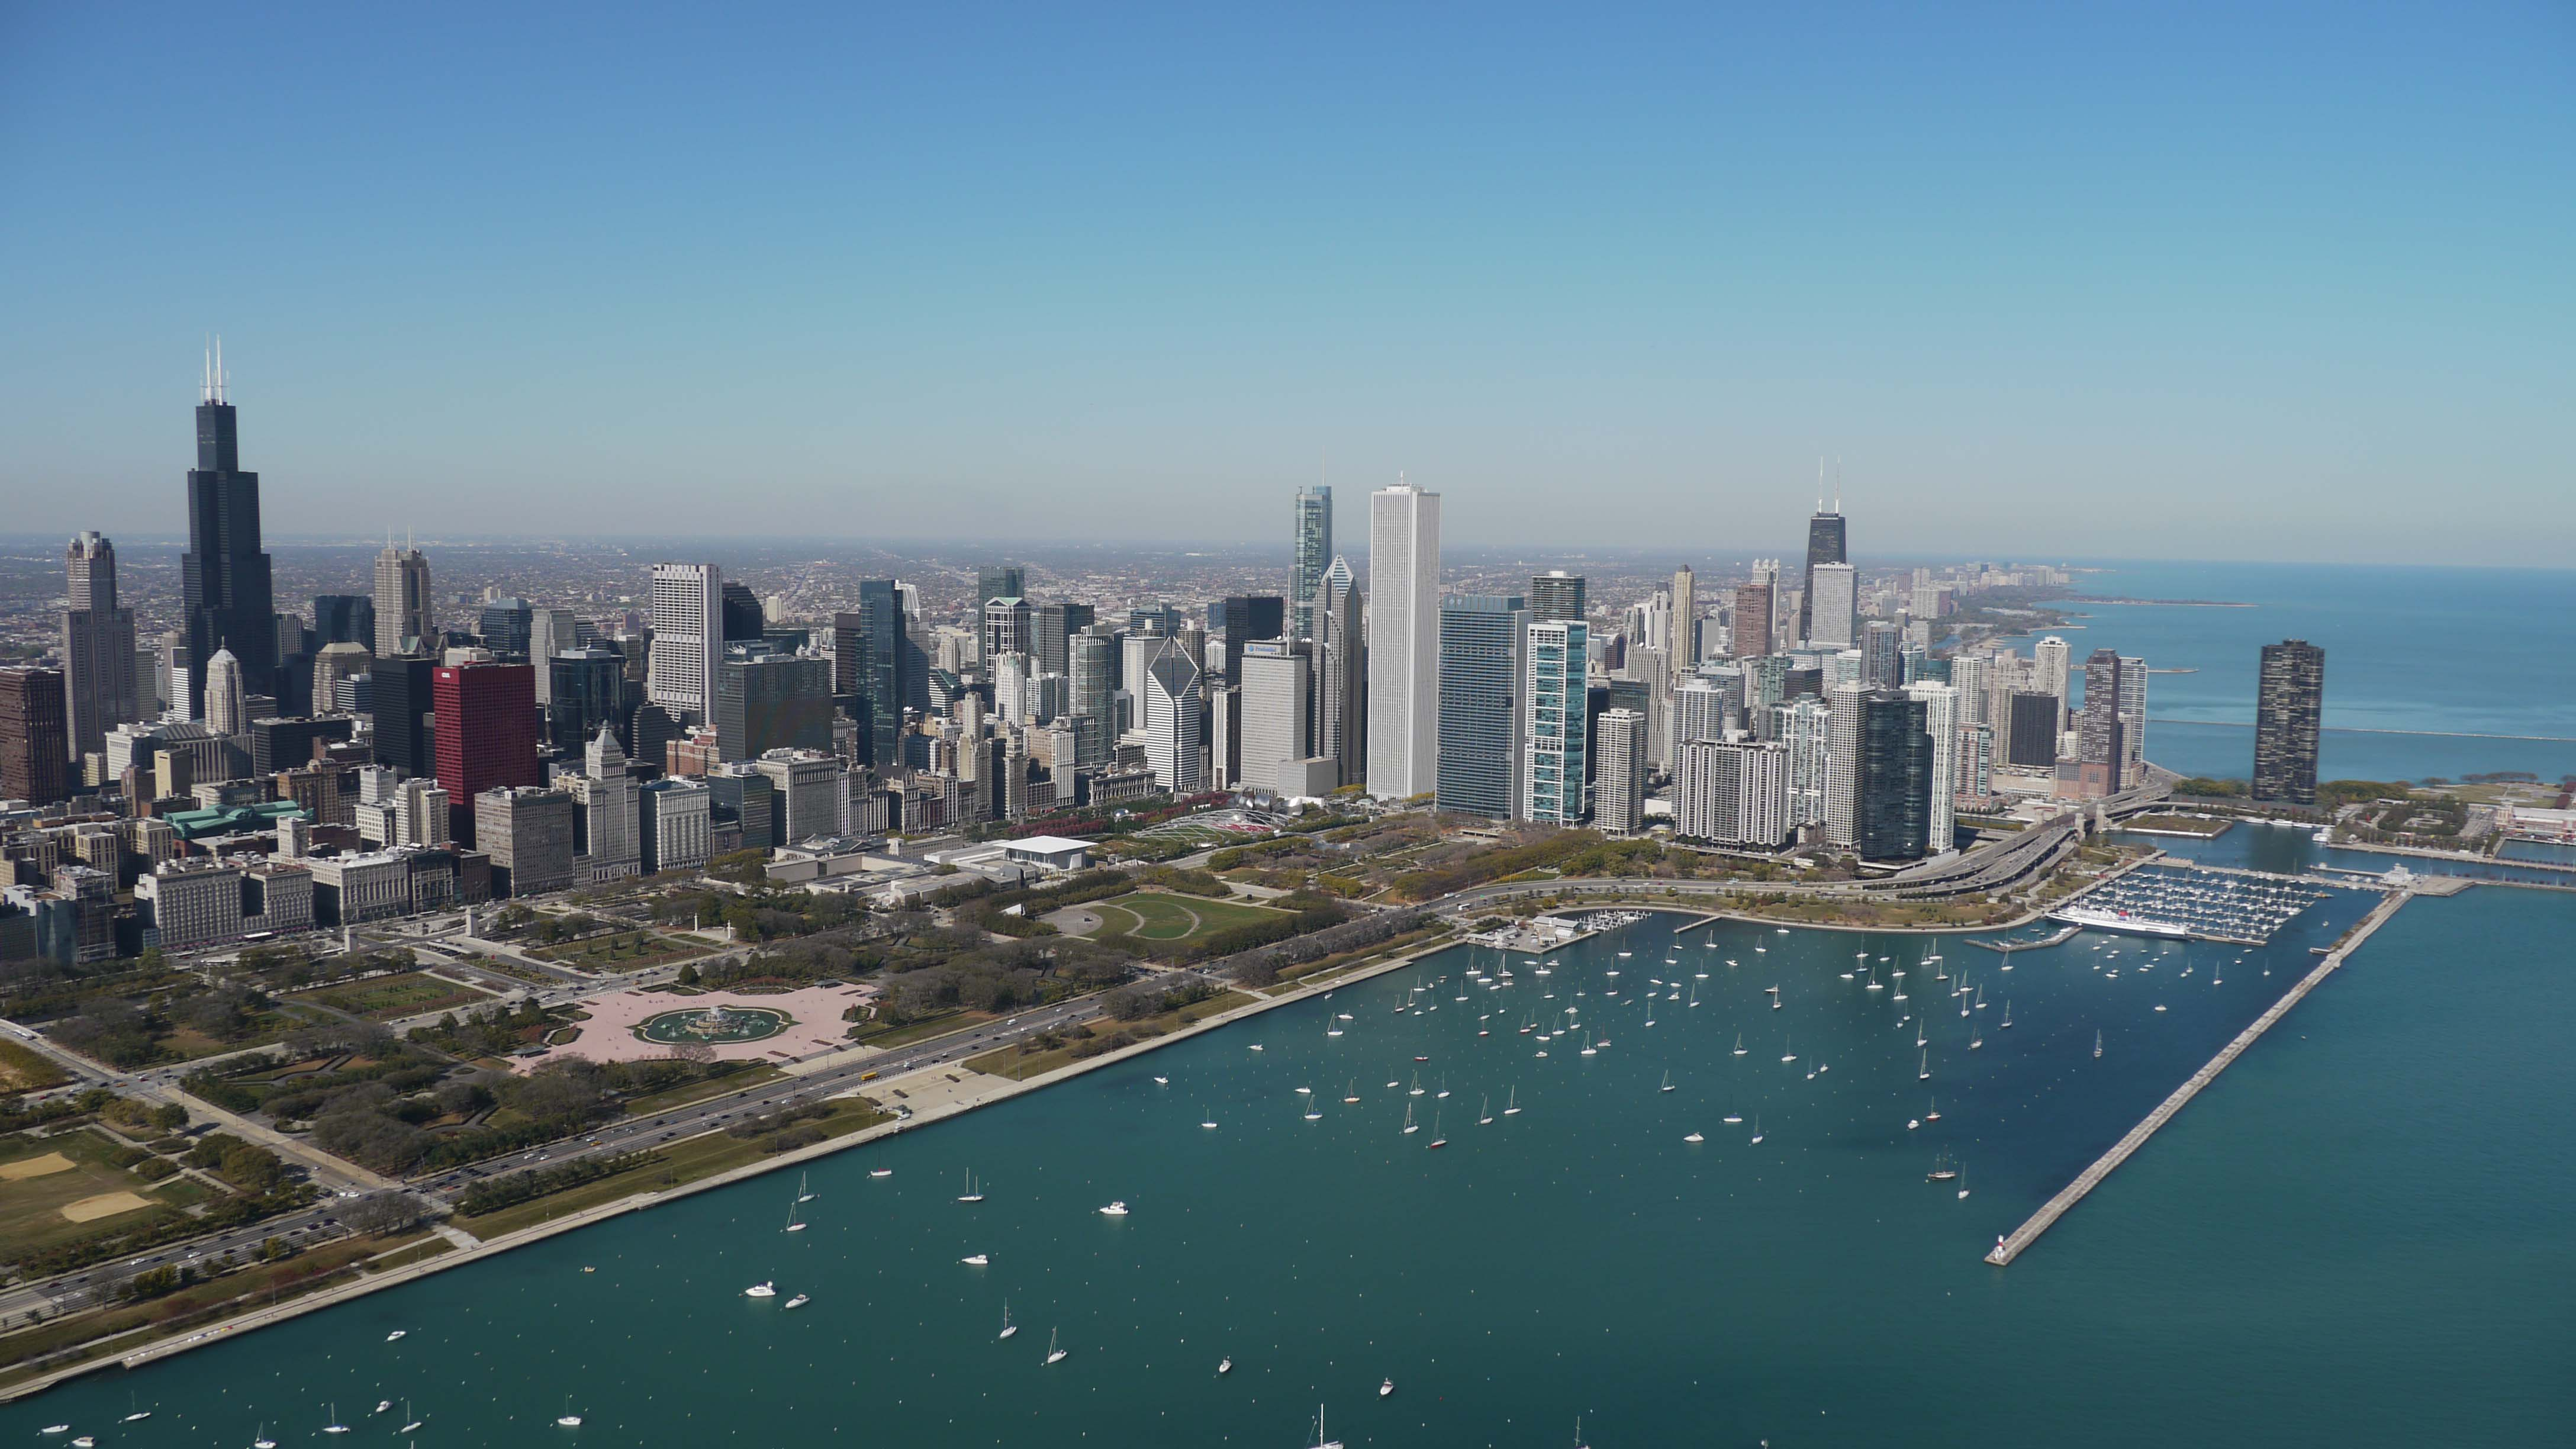 Infinity Pool Chicago yochicago s at a glance apartment lists just got better yochicago